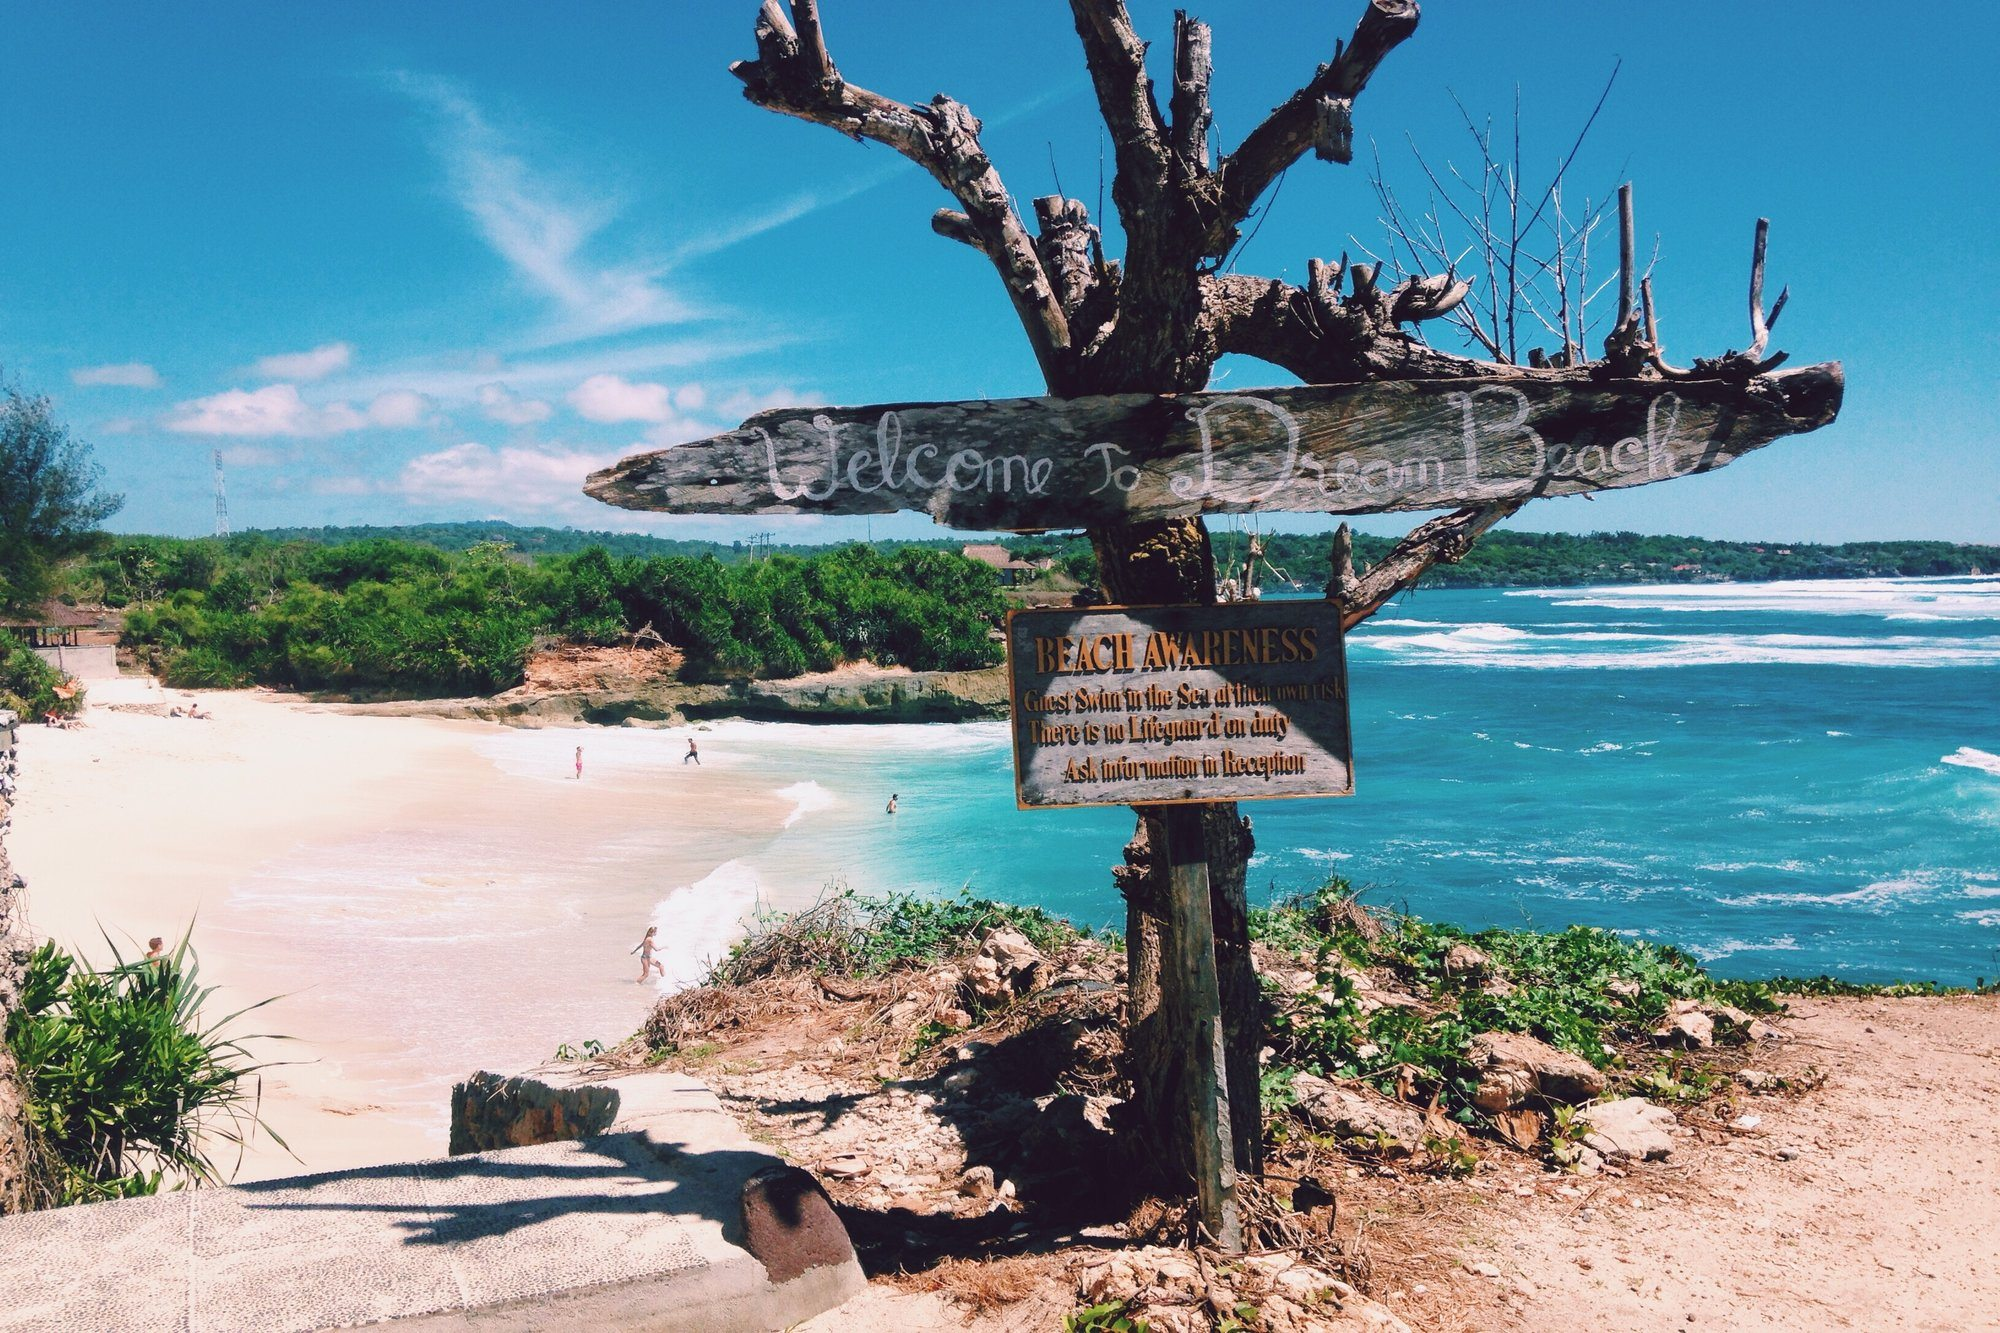 How to Get to Nusa Lembongan